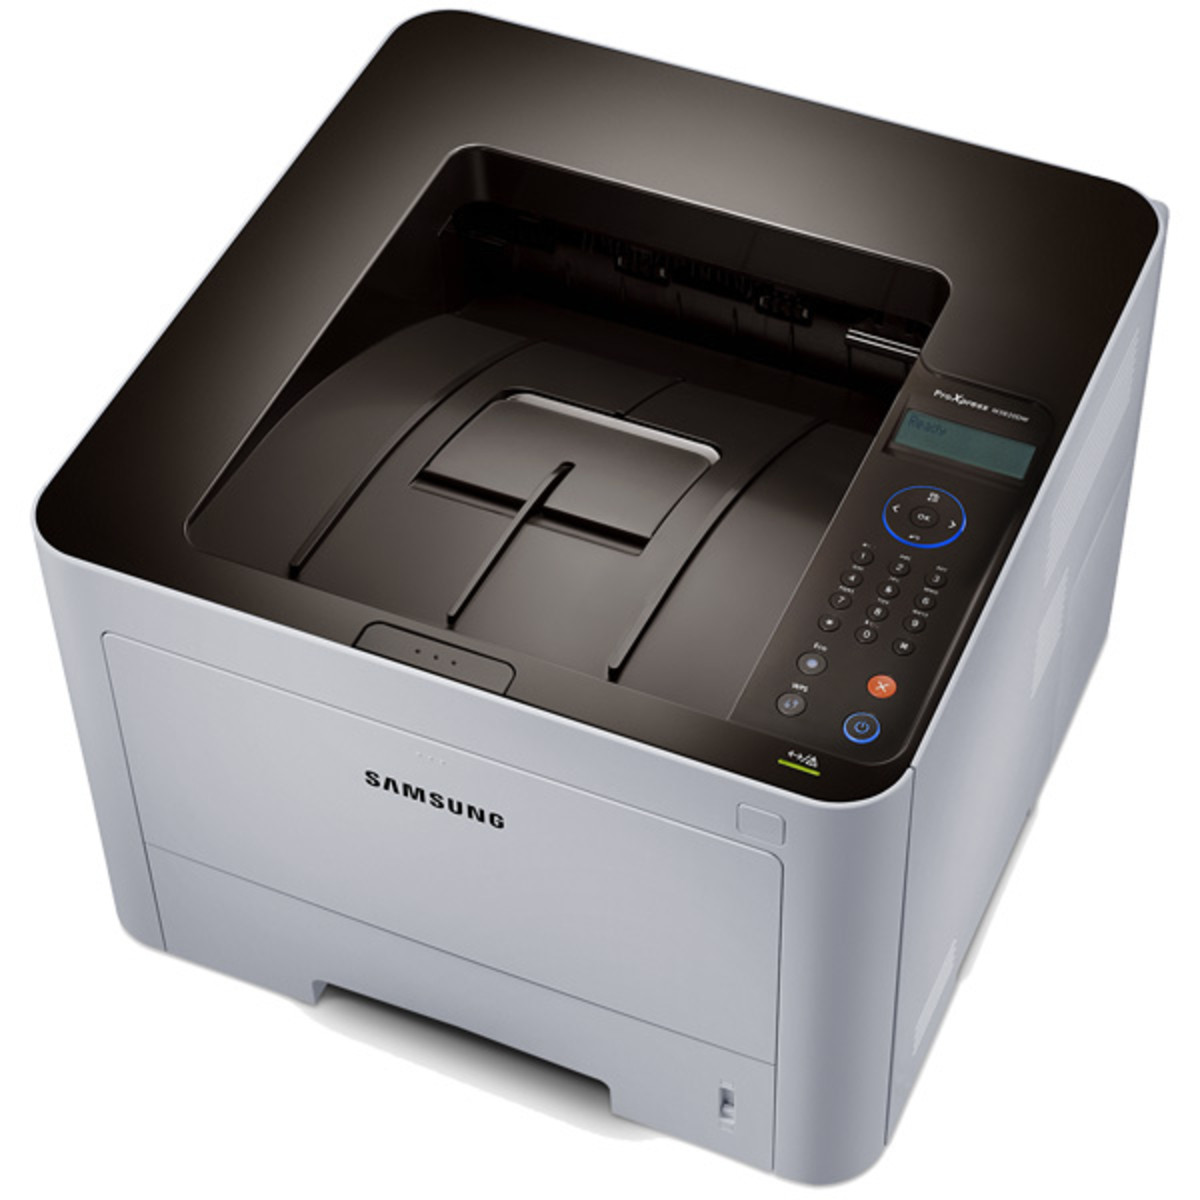 Samsung ProXpress SL-M3820DW Mono Laser Printer